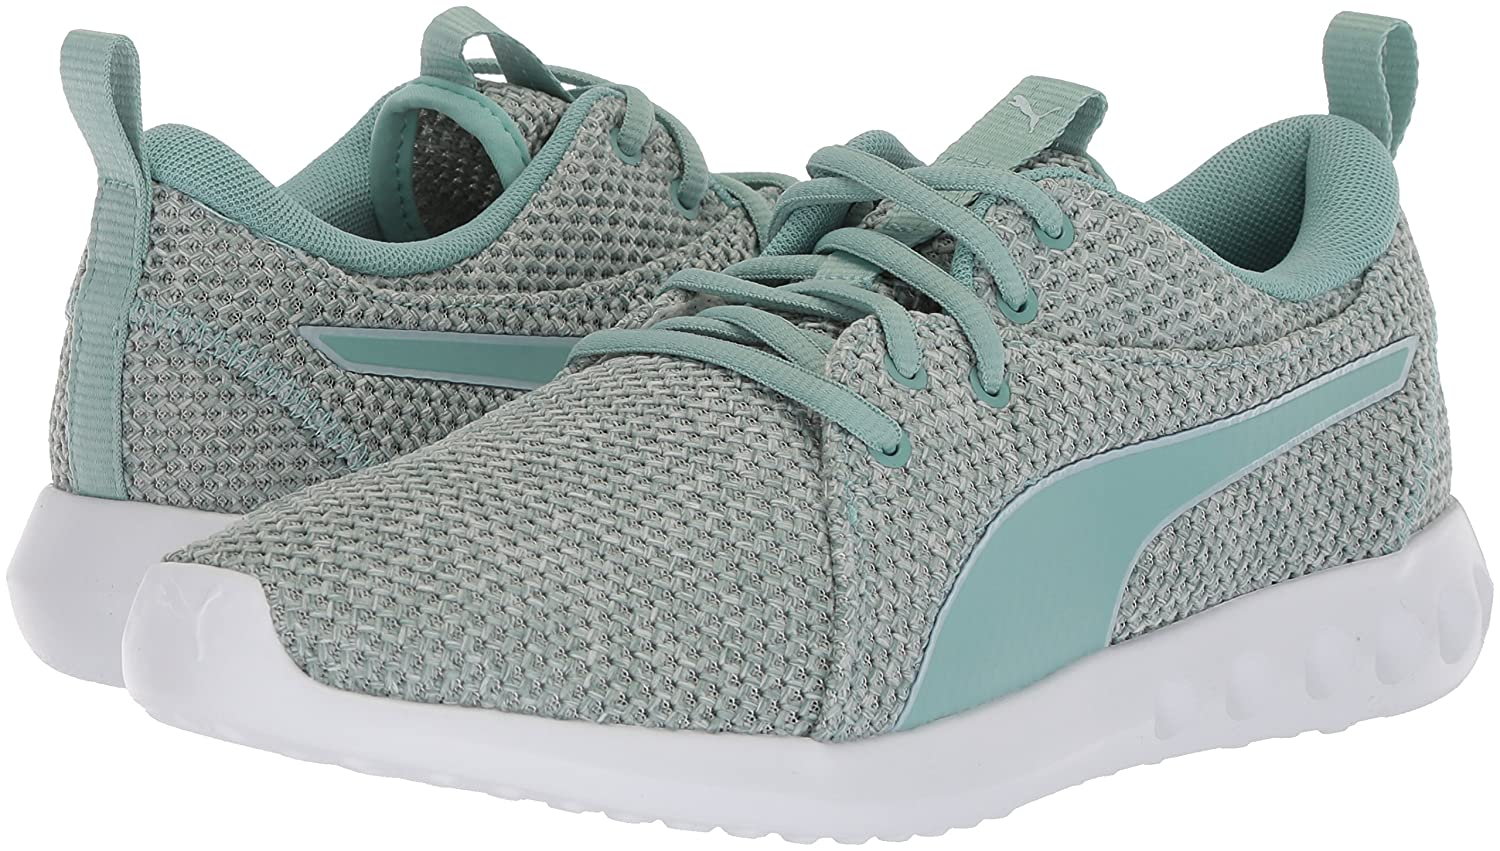 PUMA Women's 10.5 Carson 2 Nature Knit Wn Sneaker B0721JFJ2Q 10.5 Women's B(M) US|Aquifer-blue Flower 17650d